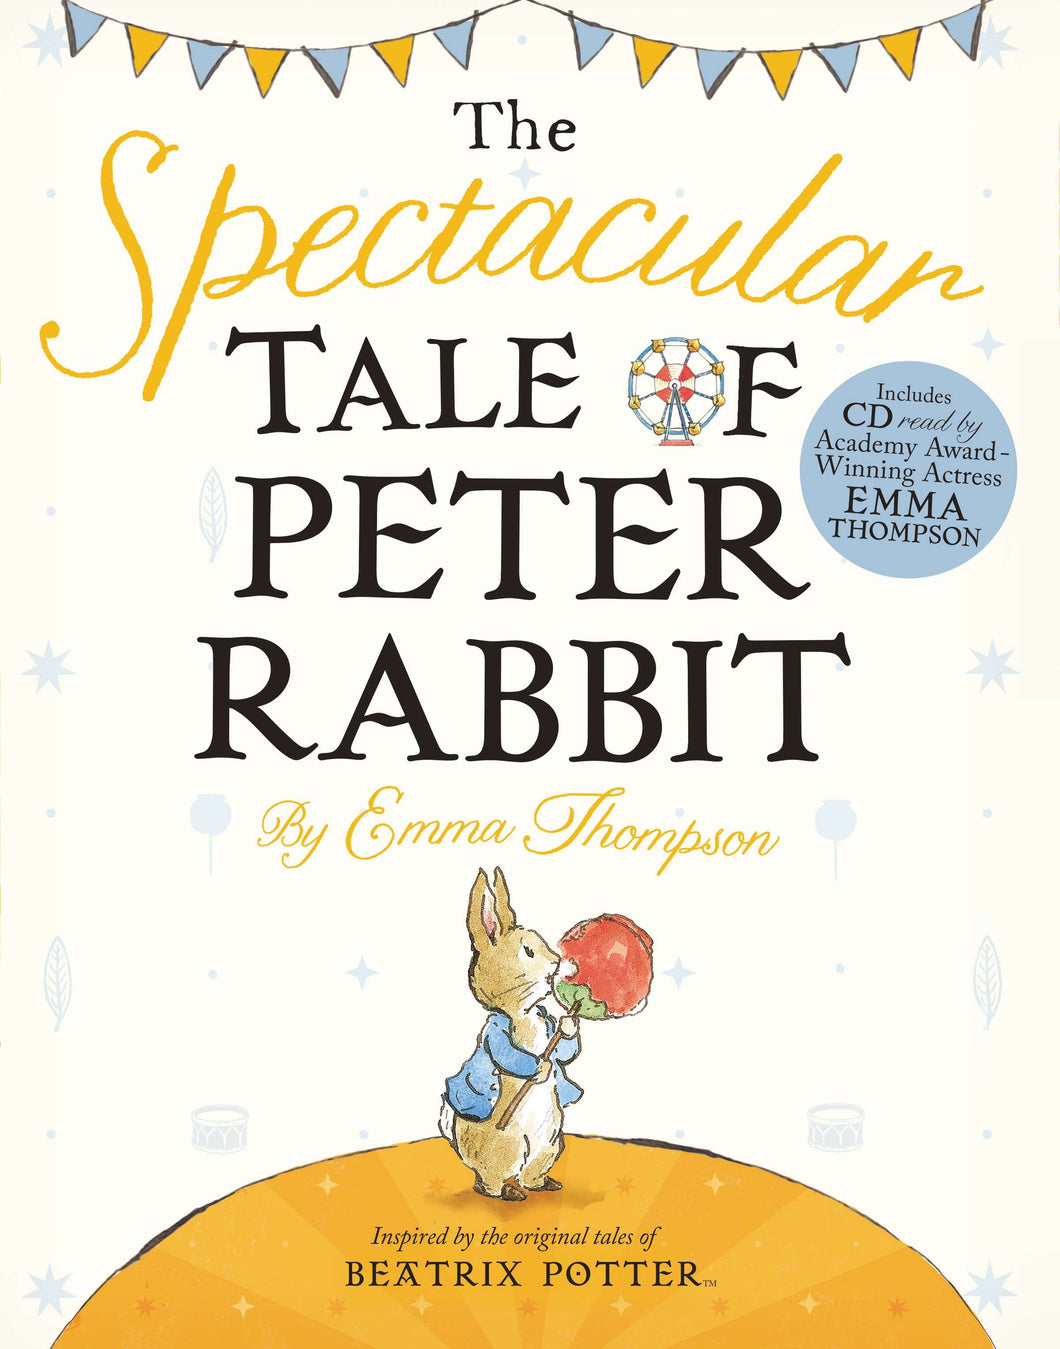 THE SPECTACULAR TALE OF PETER RABBIT (BOOK AND CD)